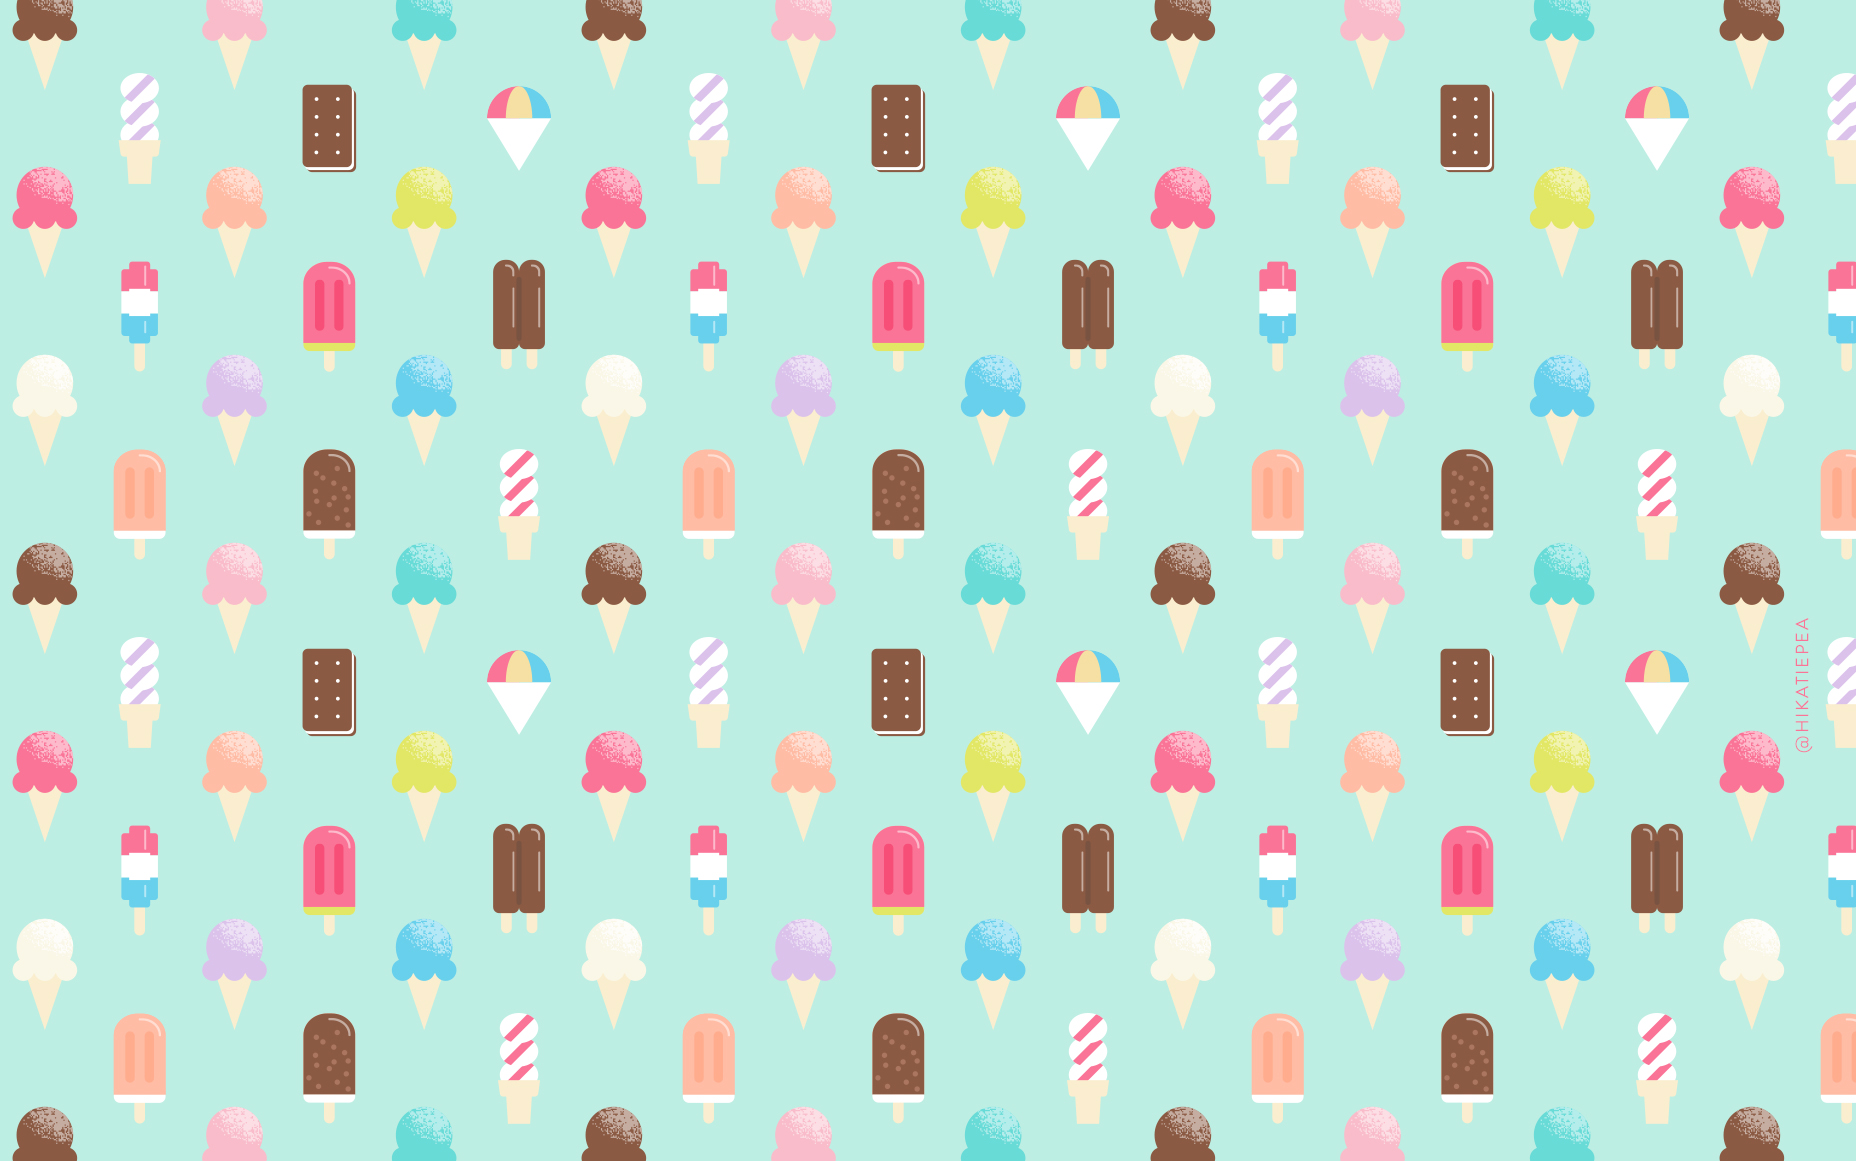 Freebie Ice Cream Wallpaper Katie Pea Studio